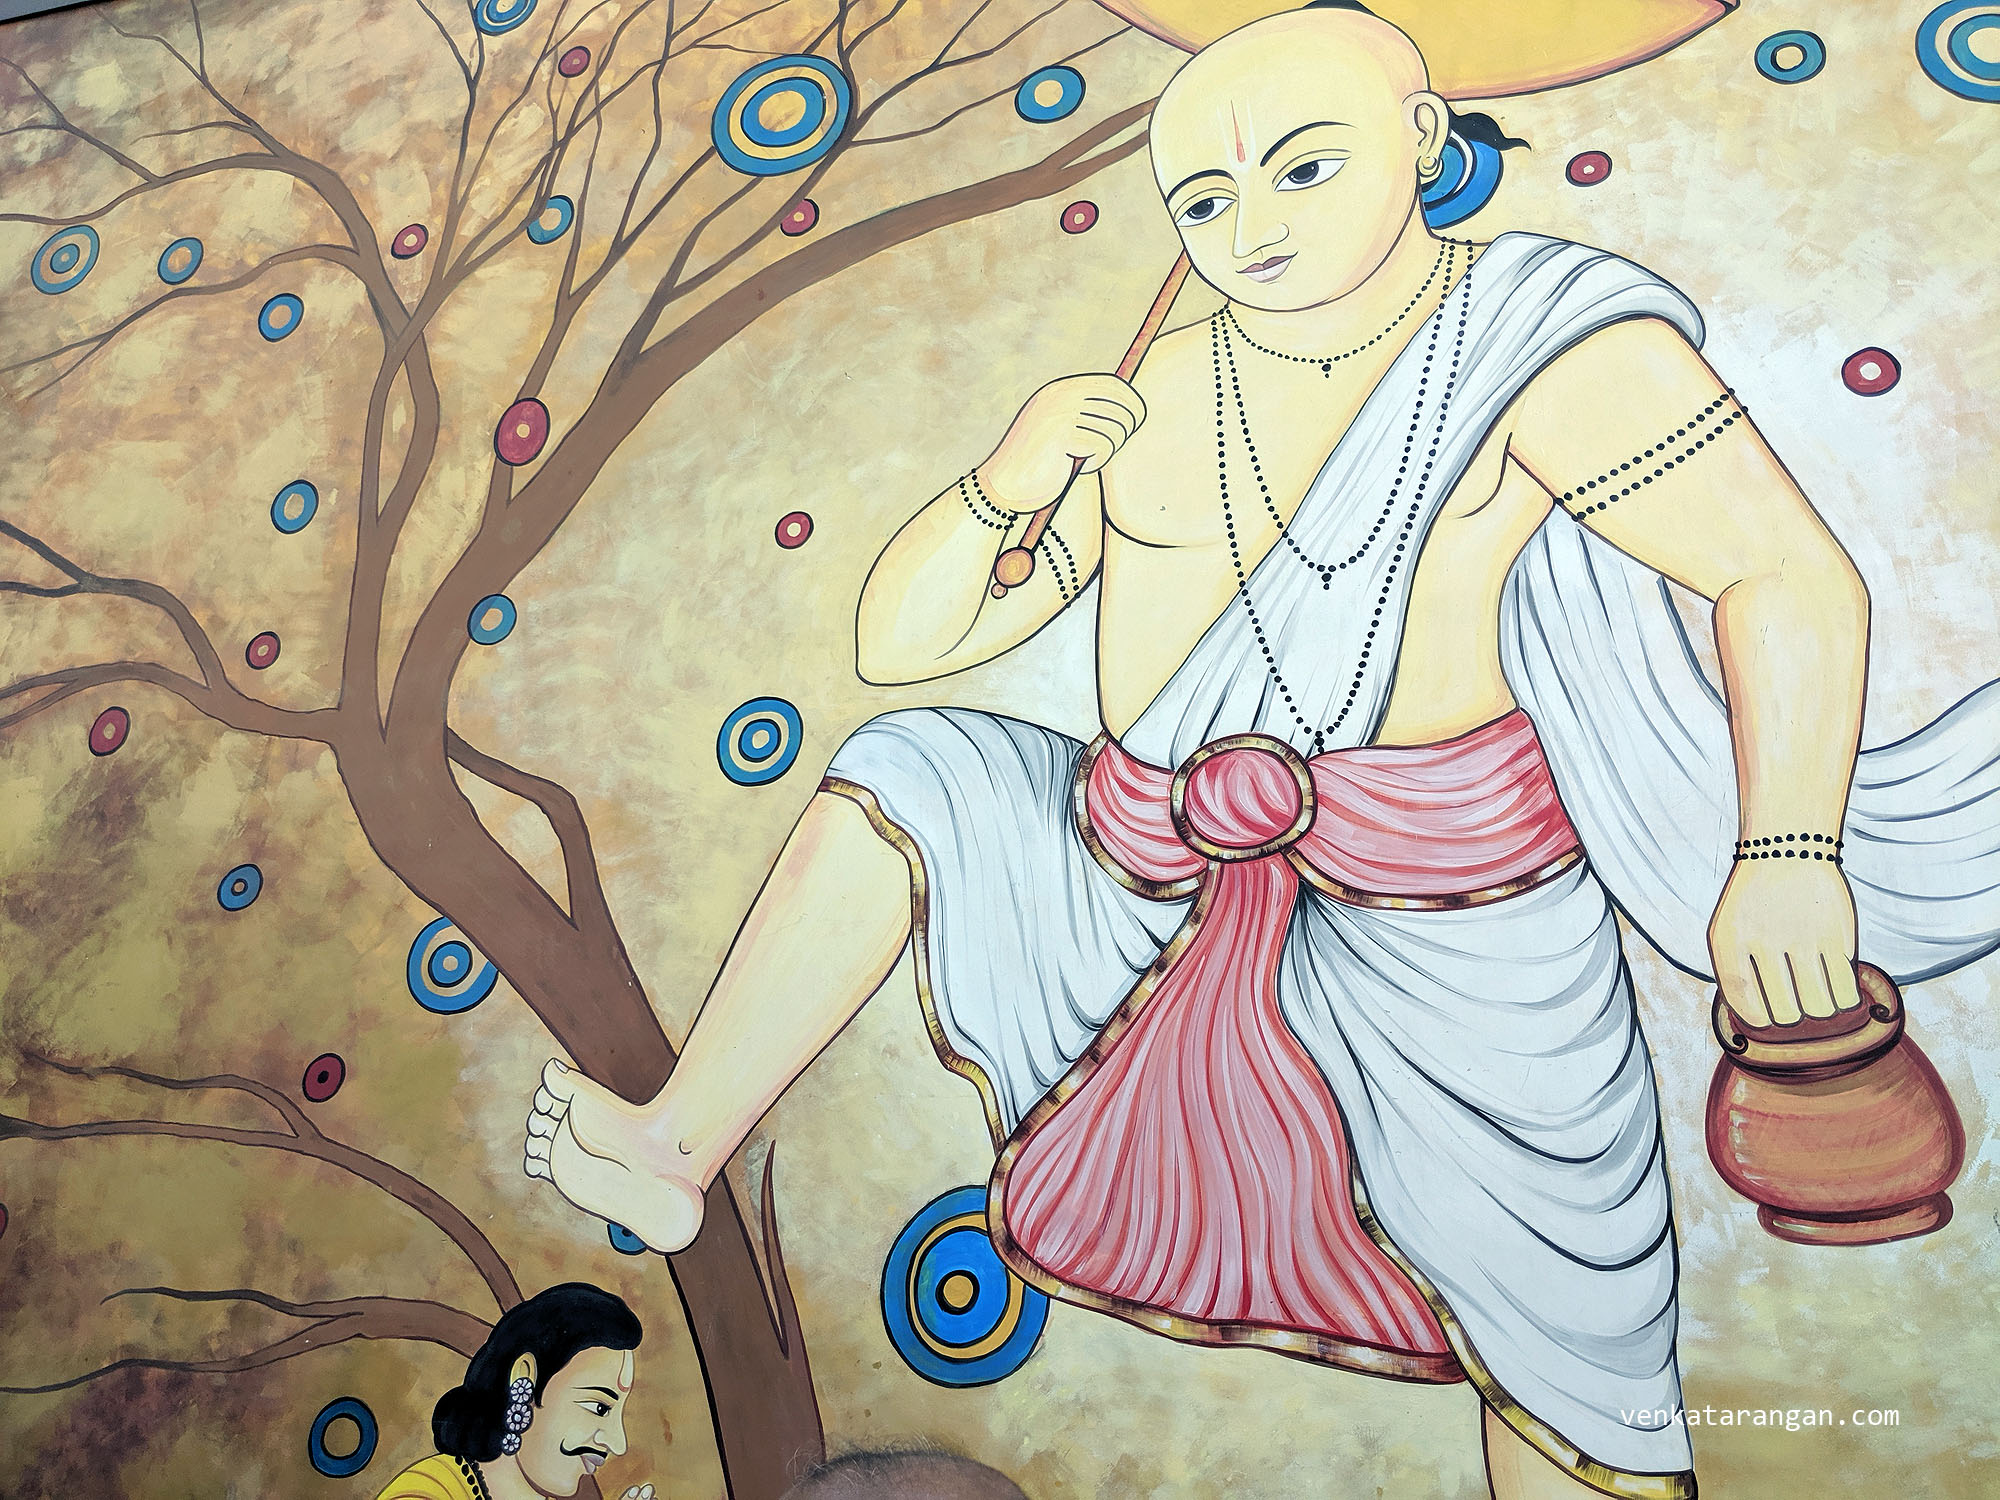 Dasavaratharam - 5. The Vamana (The Dwarf) is shown by a mural that is 15 feet in height that depicts the moment when Mahabali offers his head to the lord.